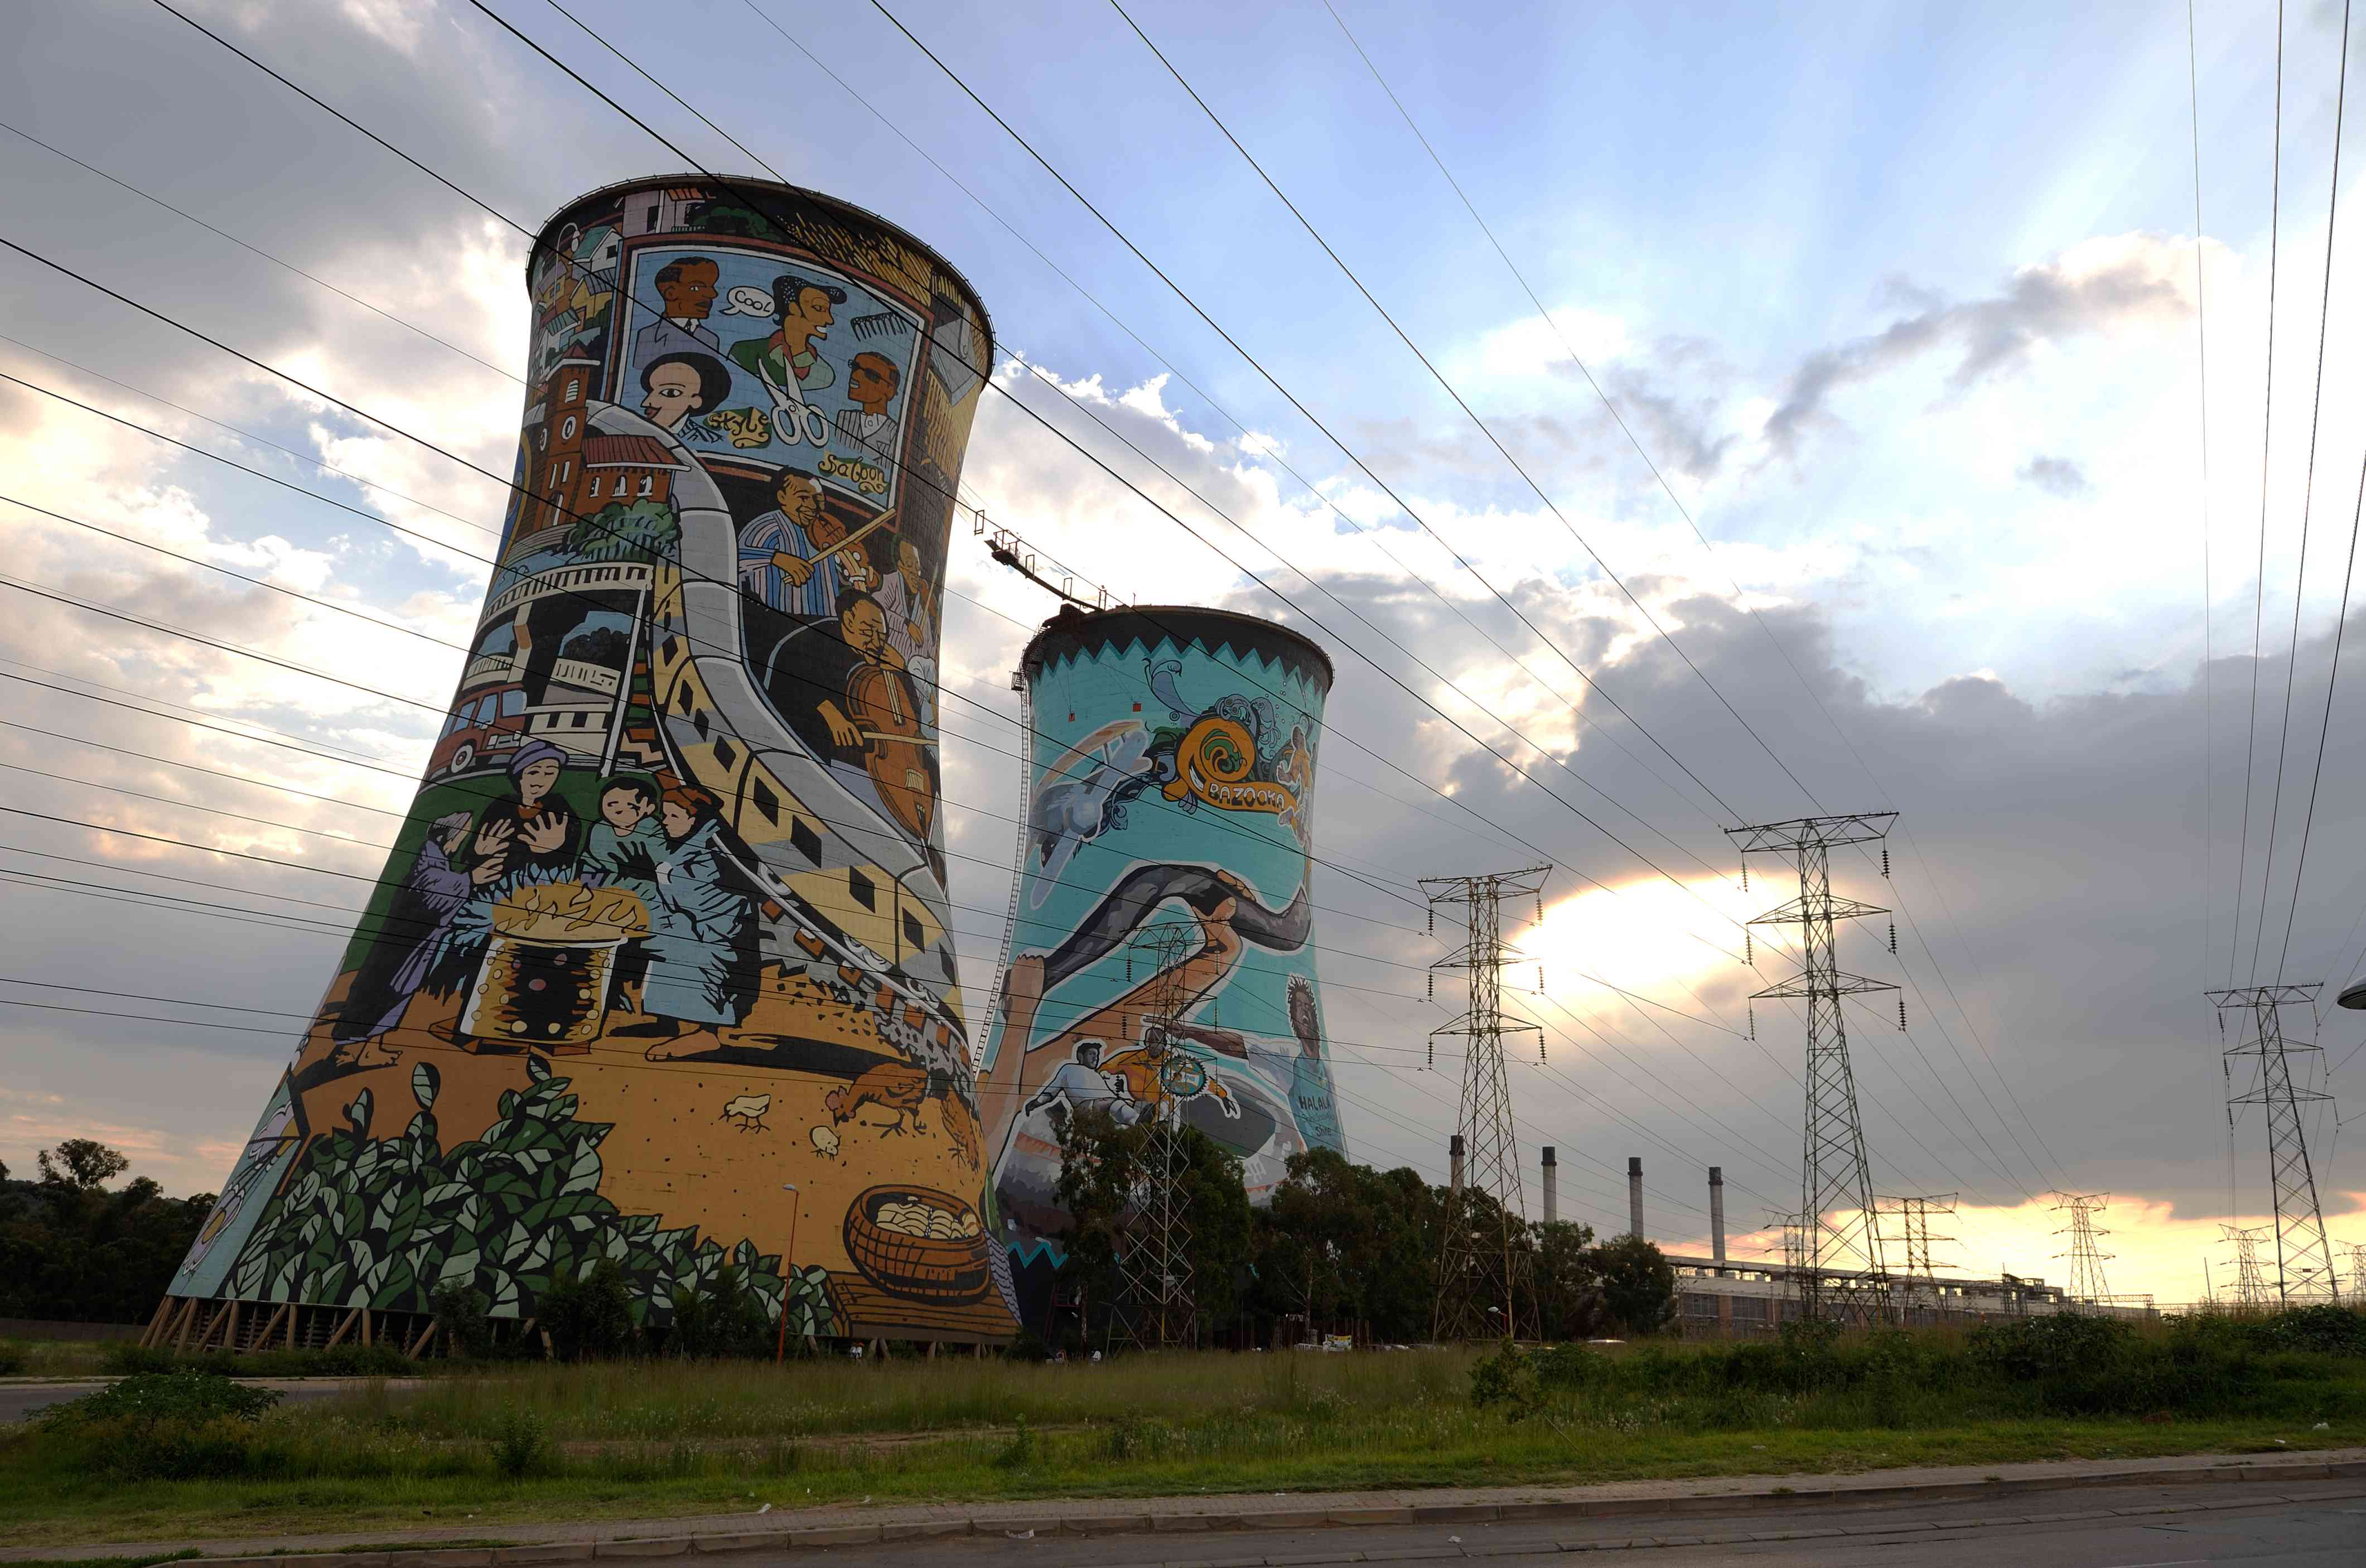 Mural painting and graffitis on the Orlando Tower